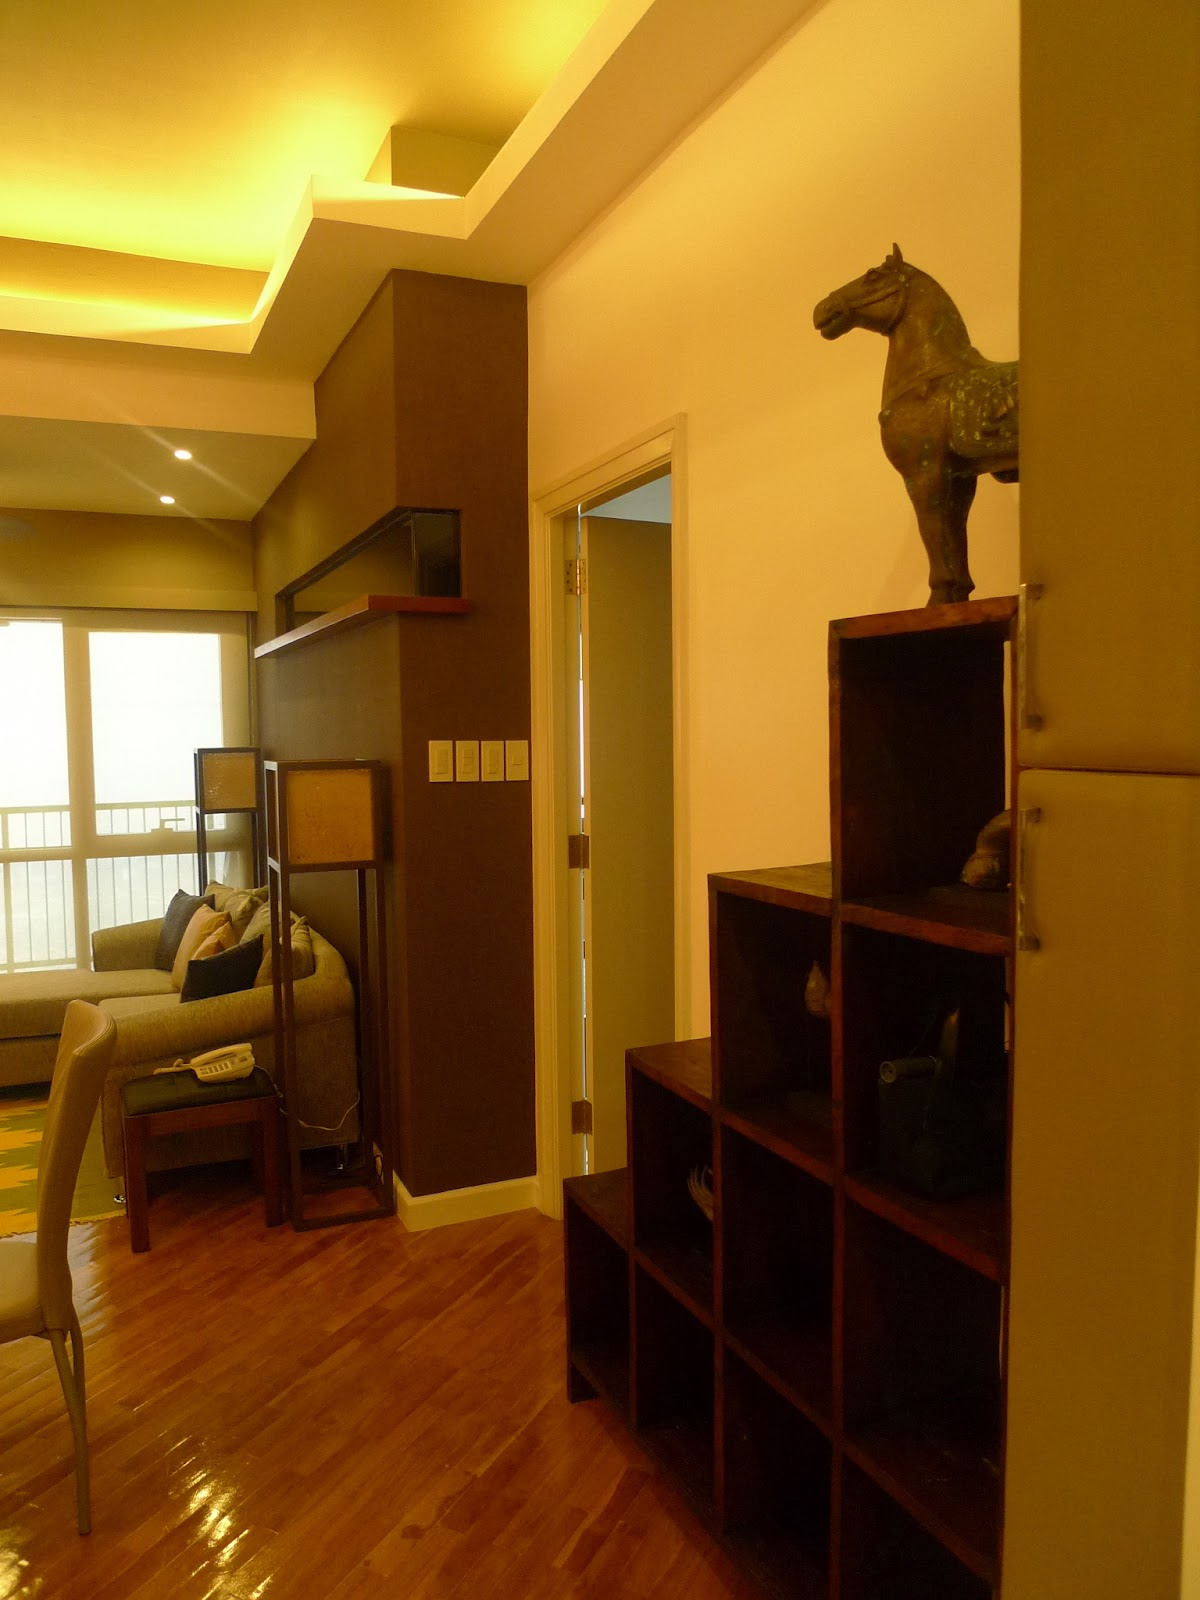 Nikki's Nurturance: The Design Features of Our Condo